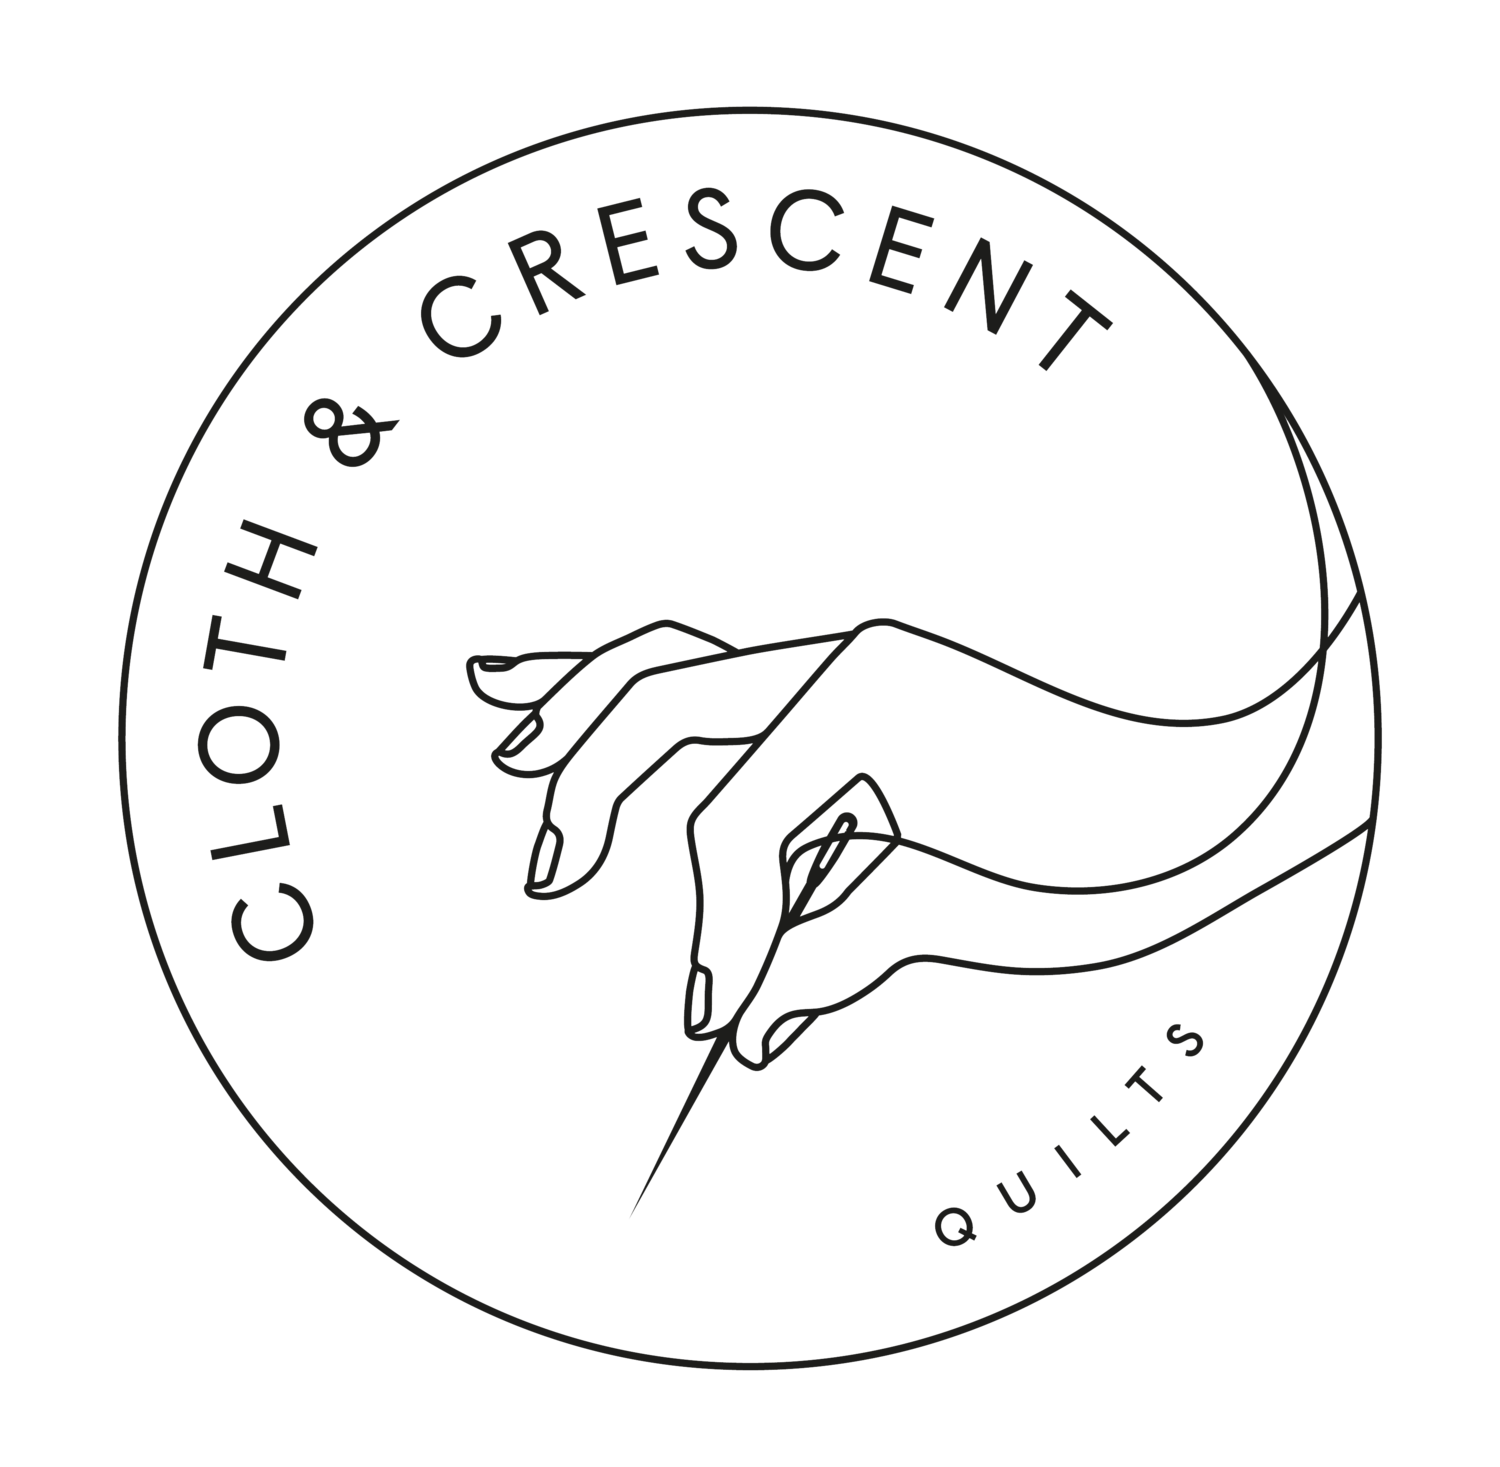 Cloth & Crescent